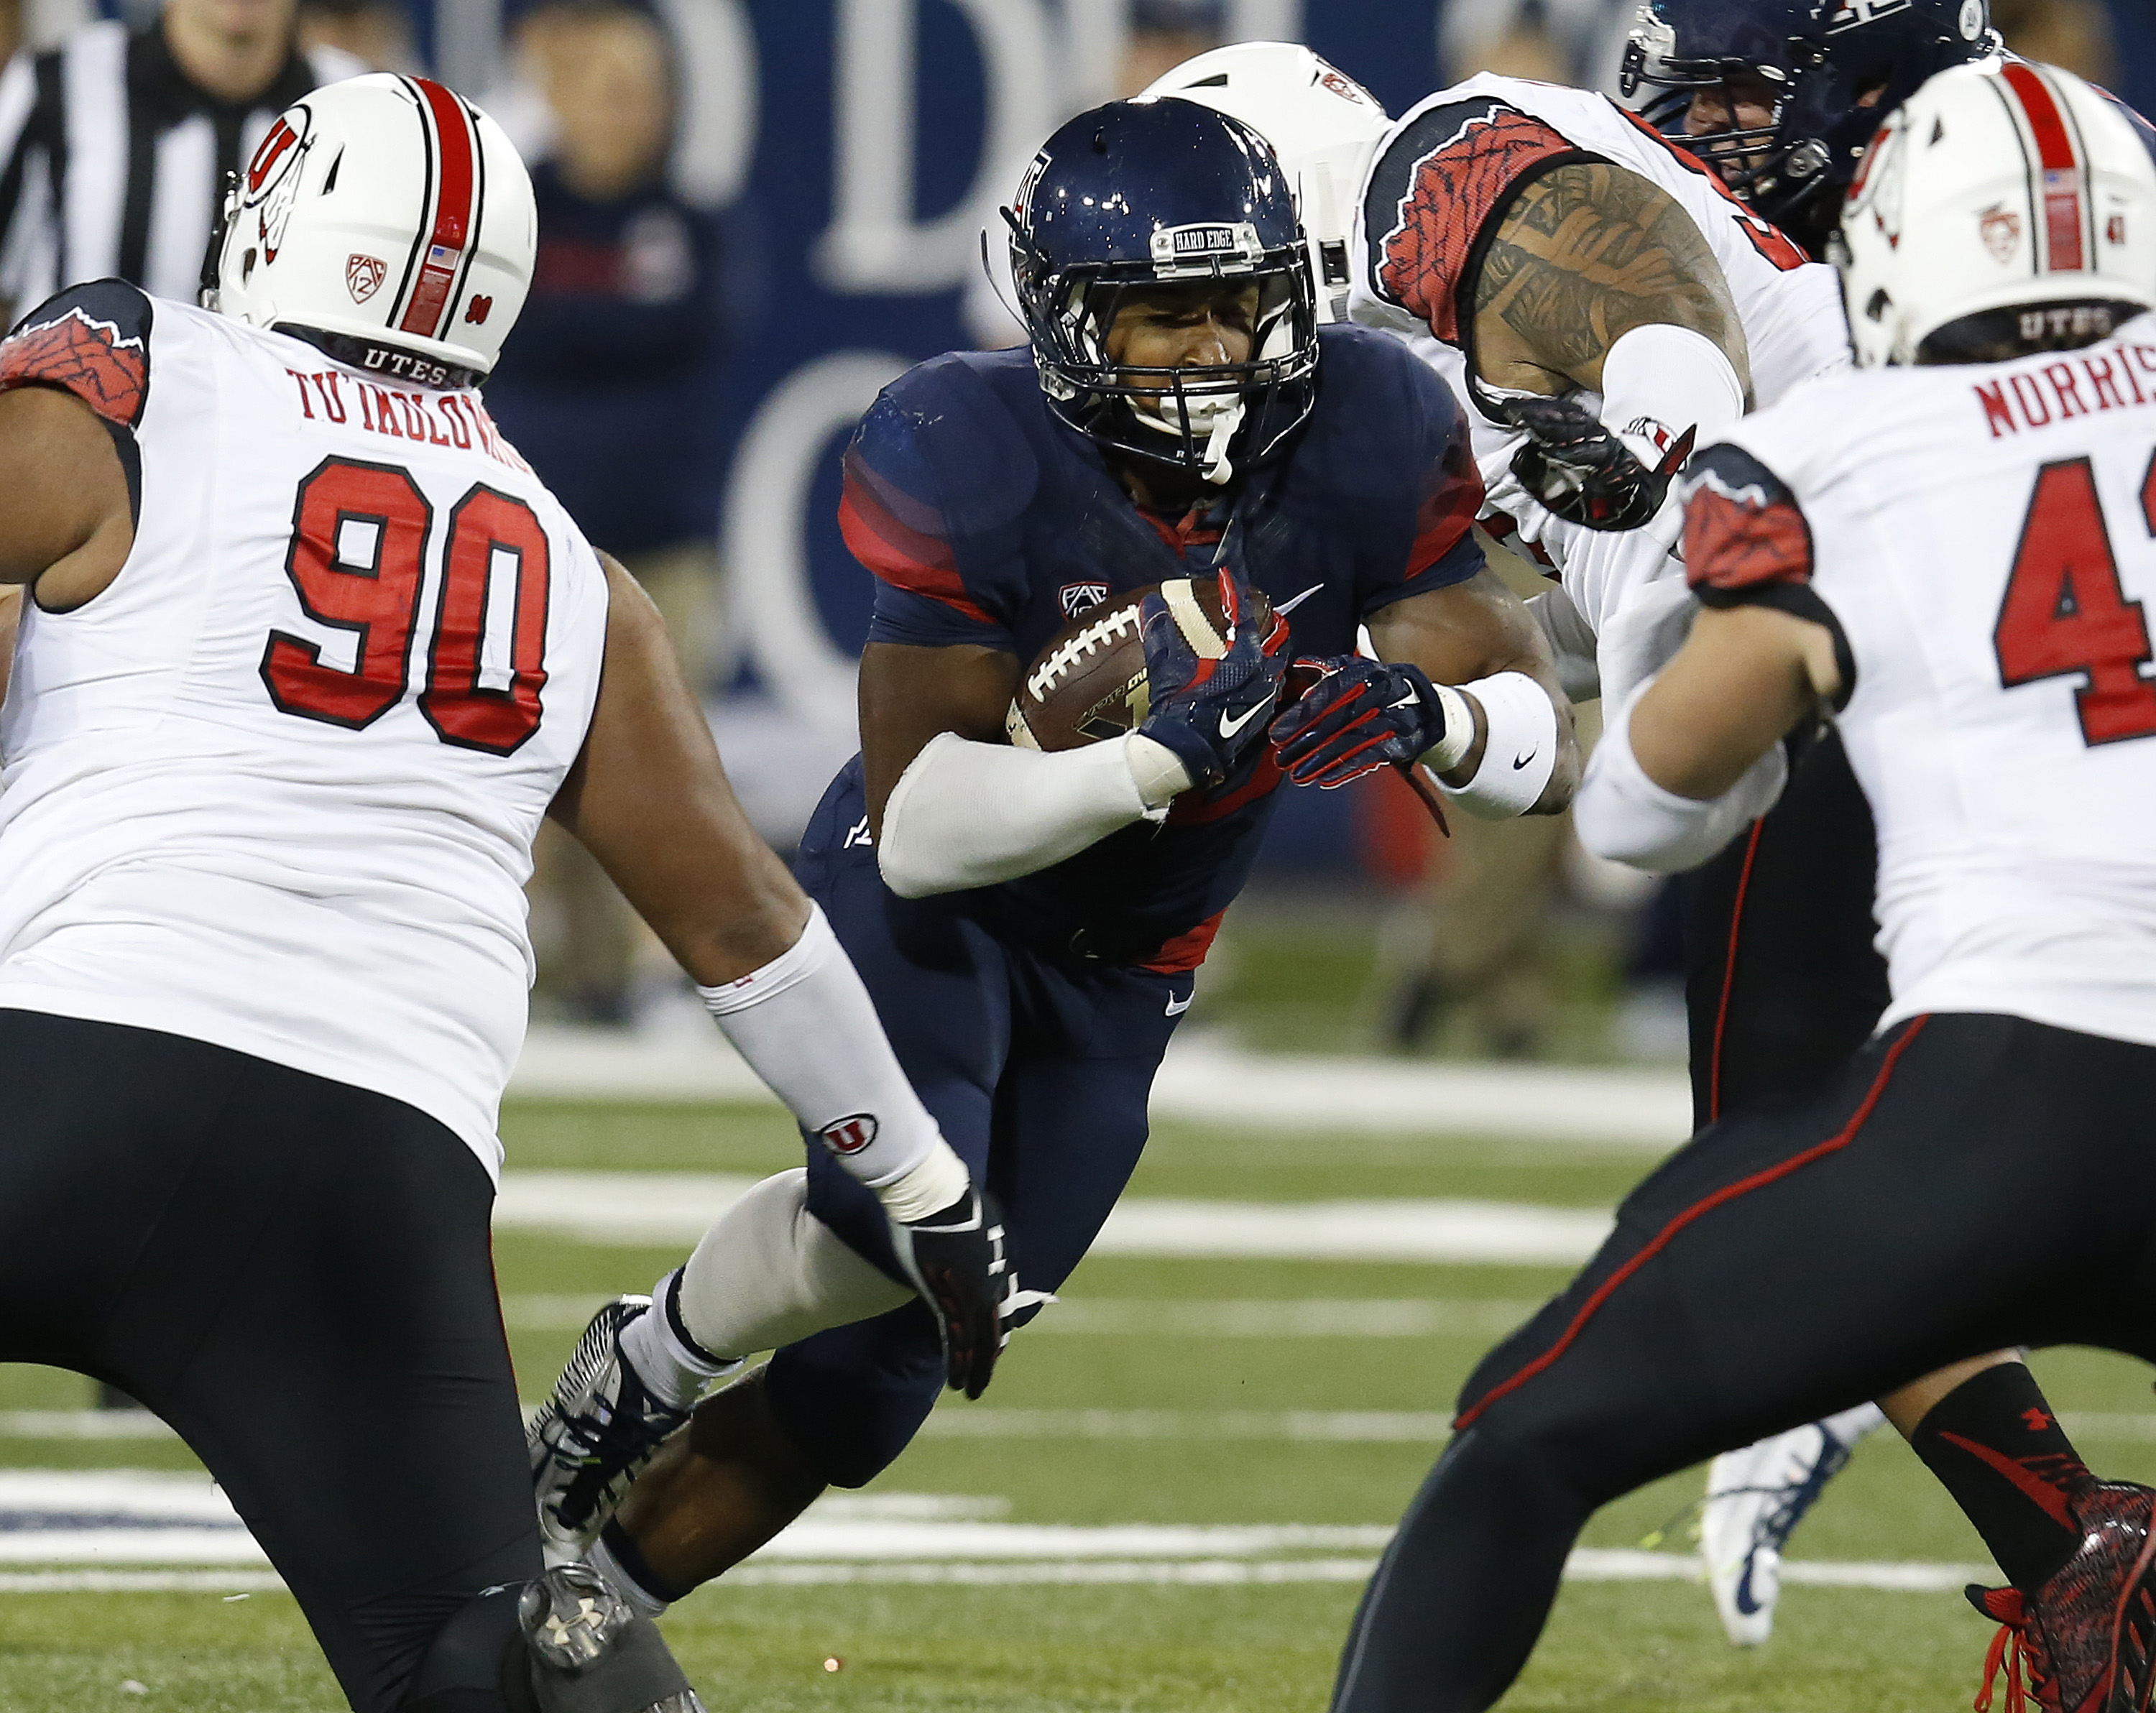 Arizona running back Jared Baker carries the ball during the first half of an NCAA college football game against Utah, Saturday, Nov. 14, 2015, in Tucson, Ariz. (AP Photo/Rick Scuteri)